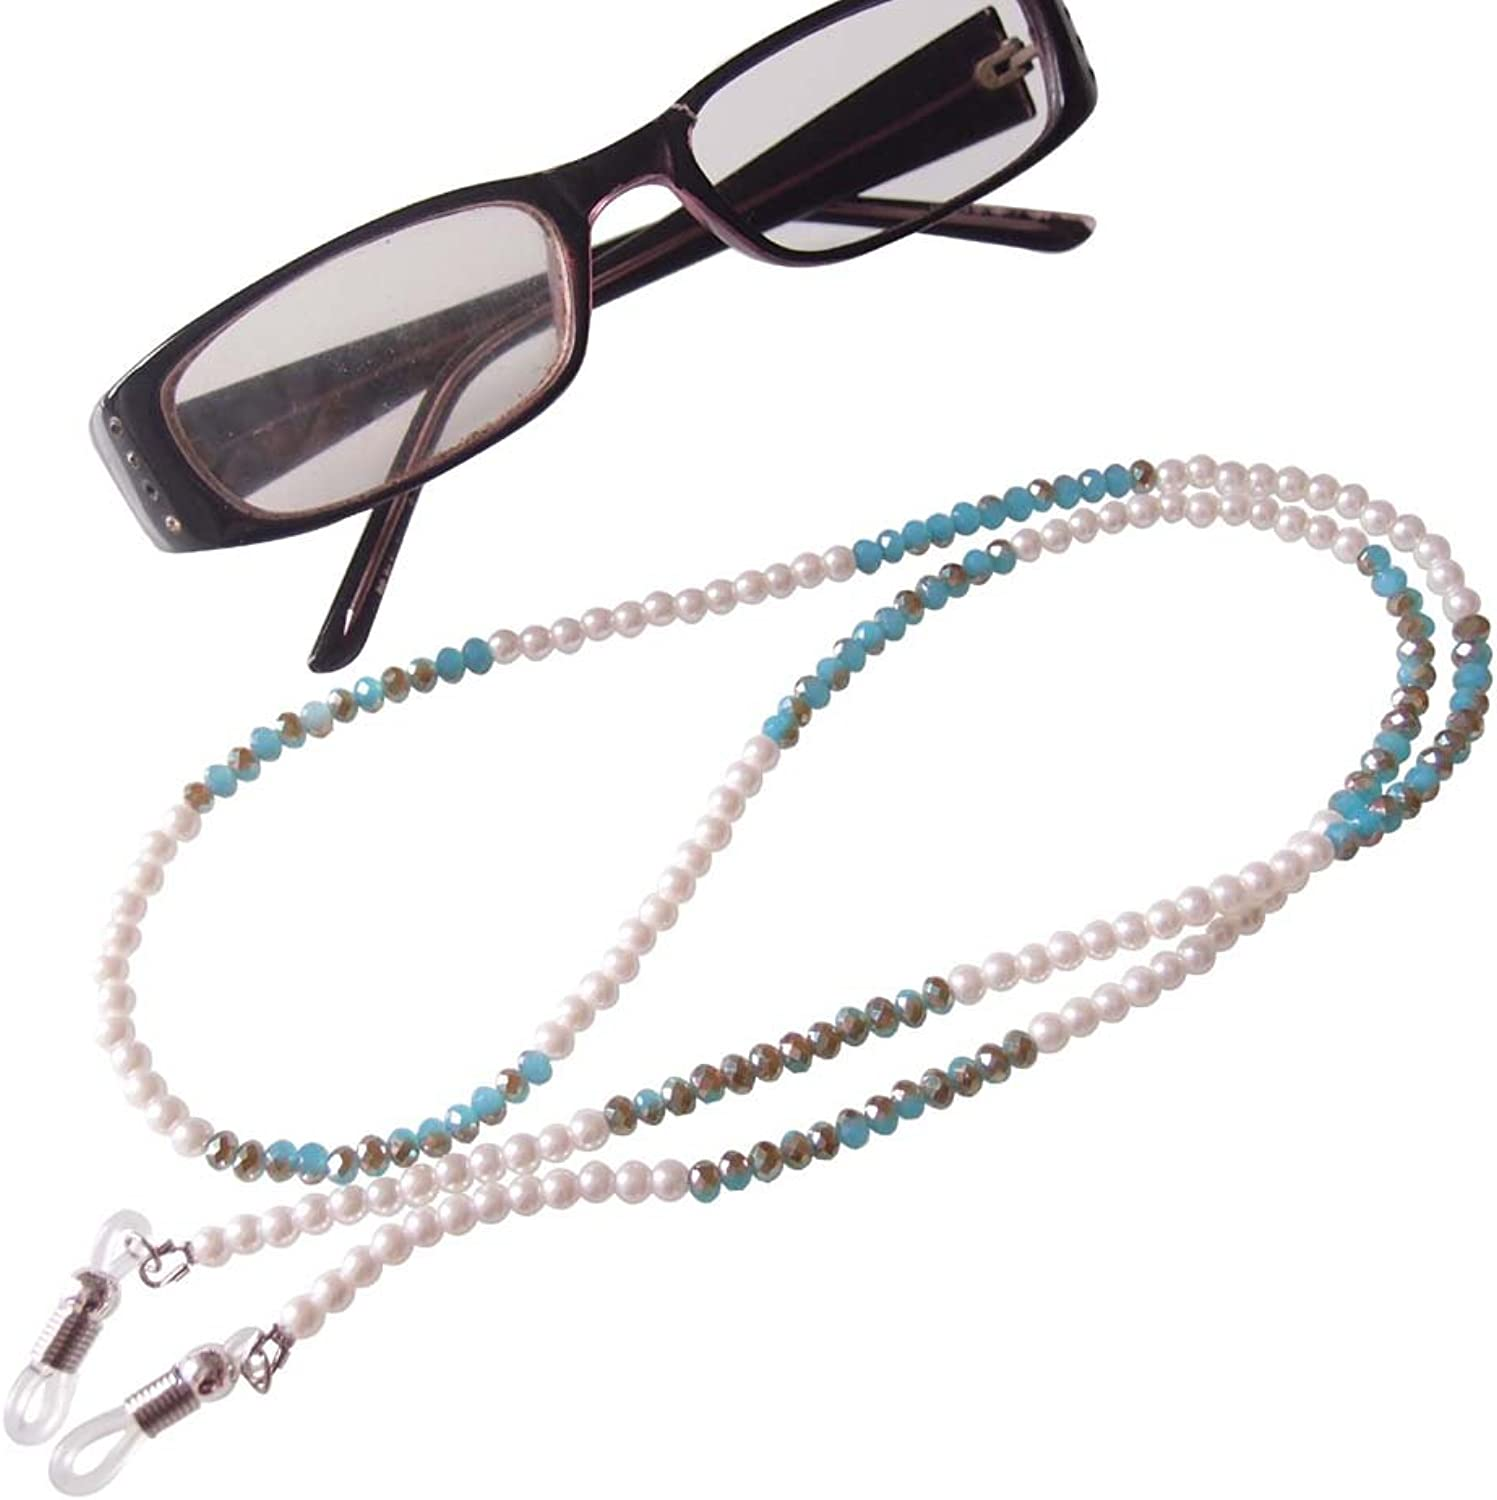 Sundysh Pearl Glasses Strap,Beaded Eyeglasses Necklace Lanyard, Eyewear Retainer Chain Cord Strip Holder